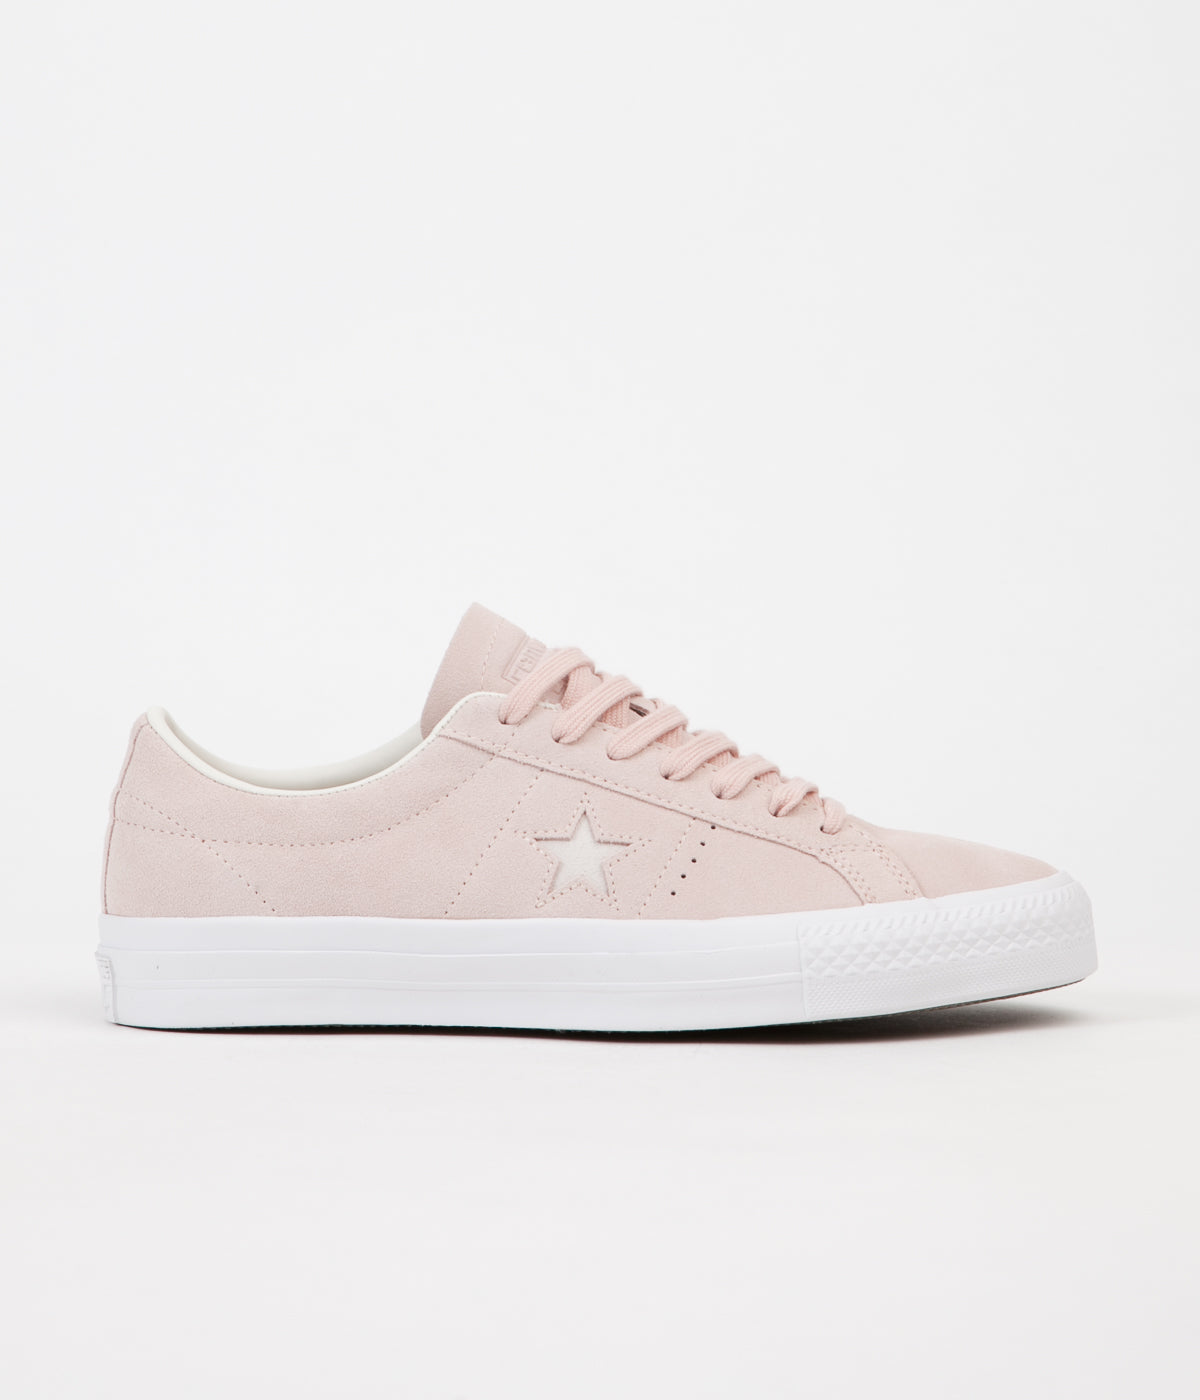 2293bb75a6f7 Converse One Star Pro Ox Shoes - Dusk Pink   Egret   White